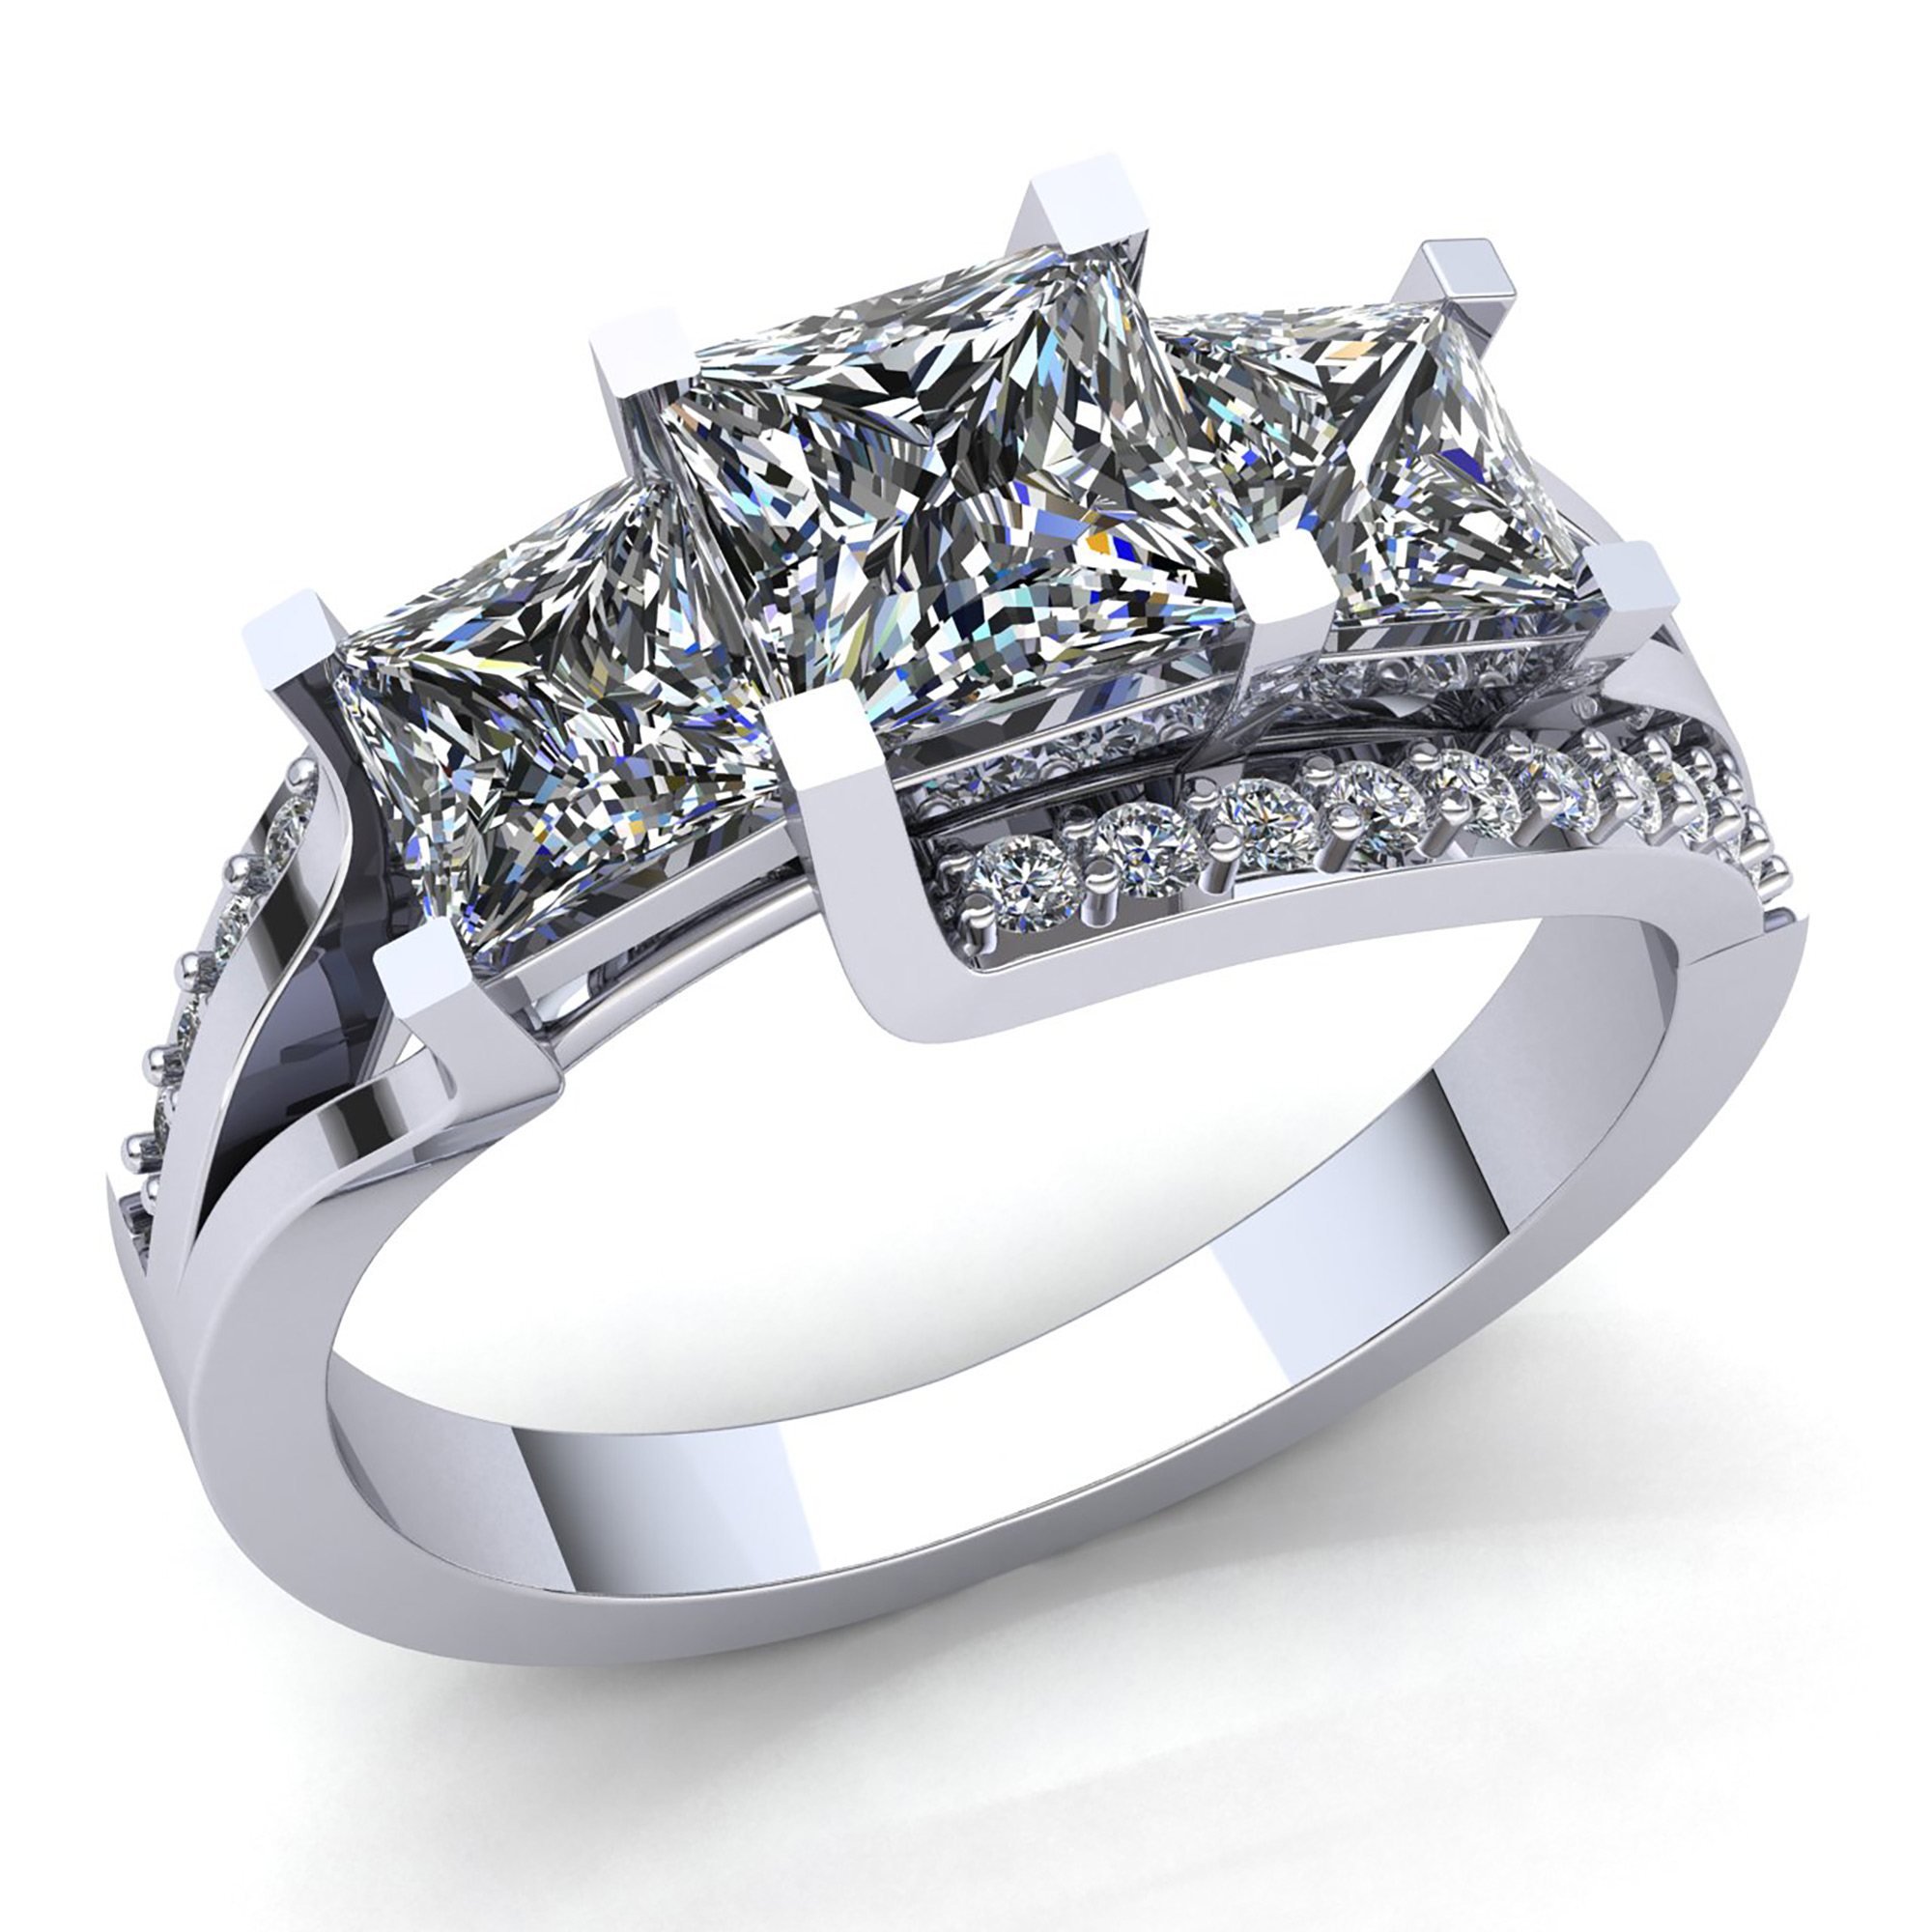 past round a diamond itm ladies present yg band dia rings cut future wedding gold